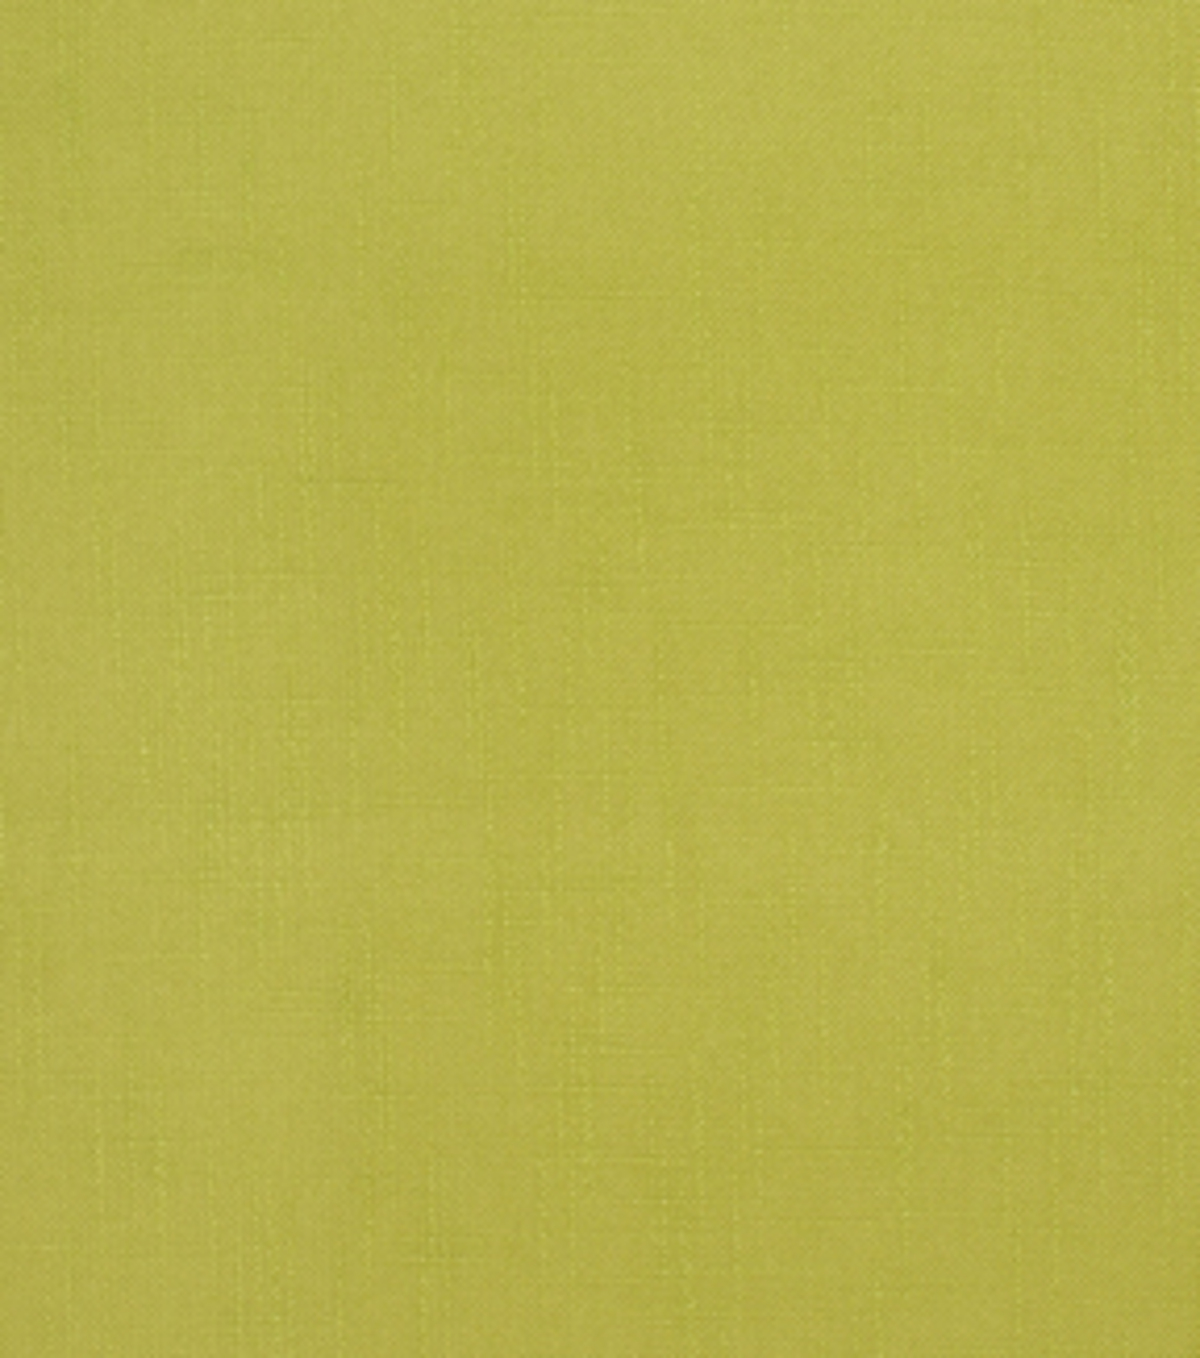 Home Decor 8\u0022x8\u0022 Fabric Swatch-Signature Series Gallantry Lime